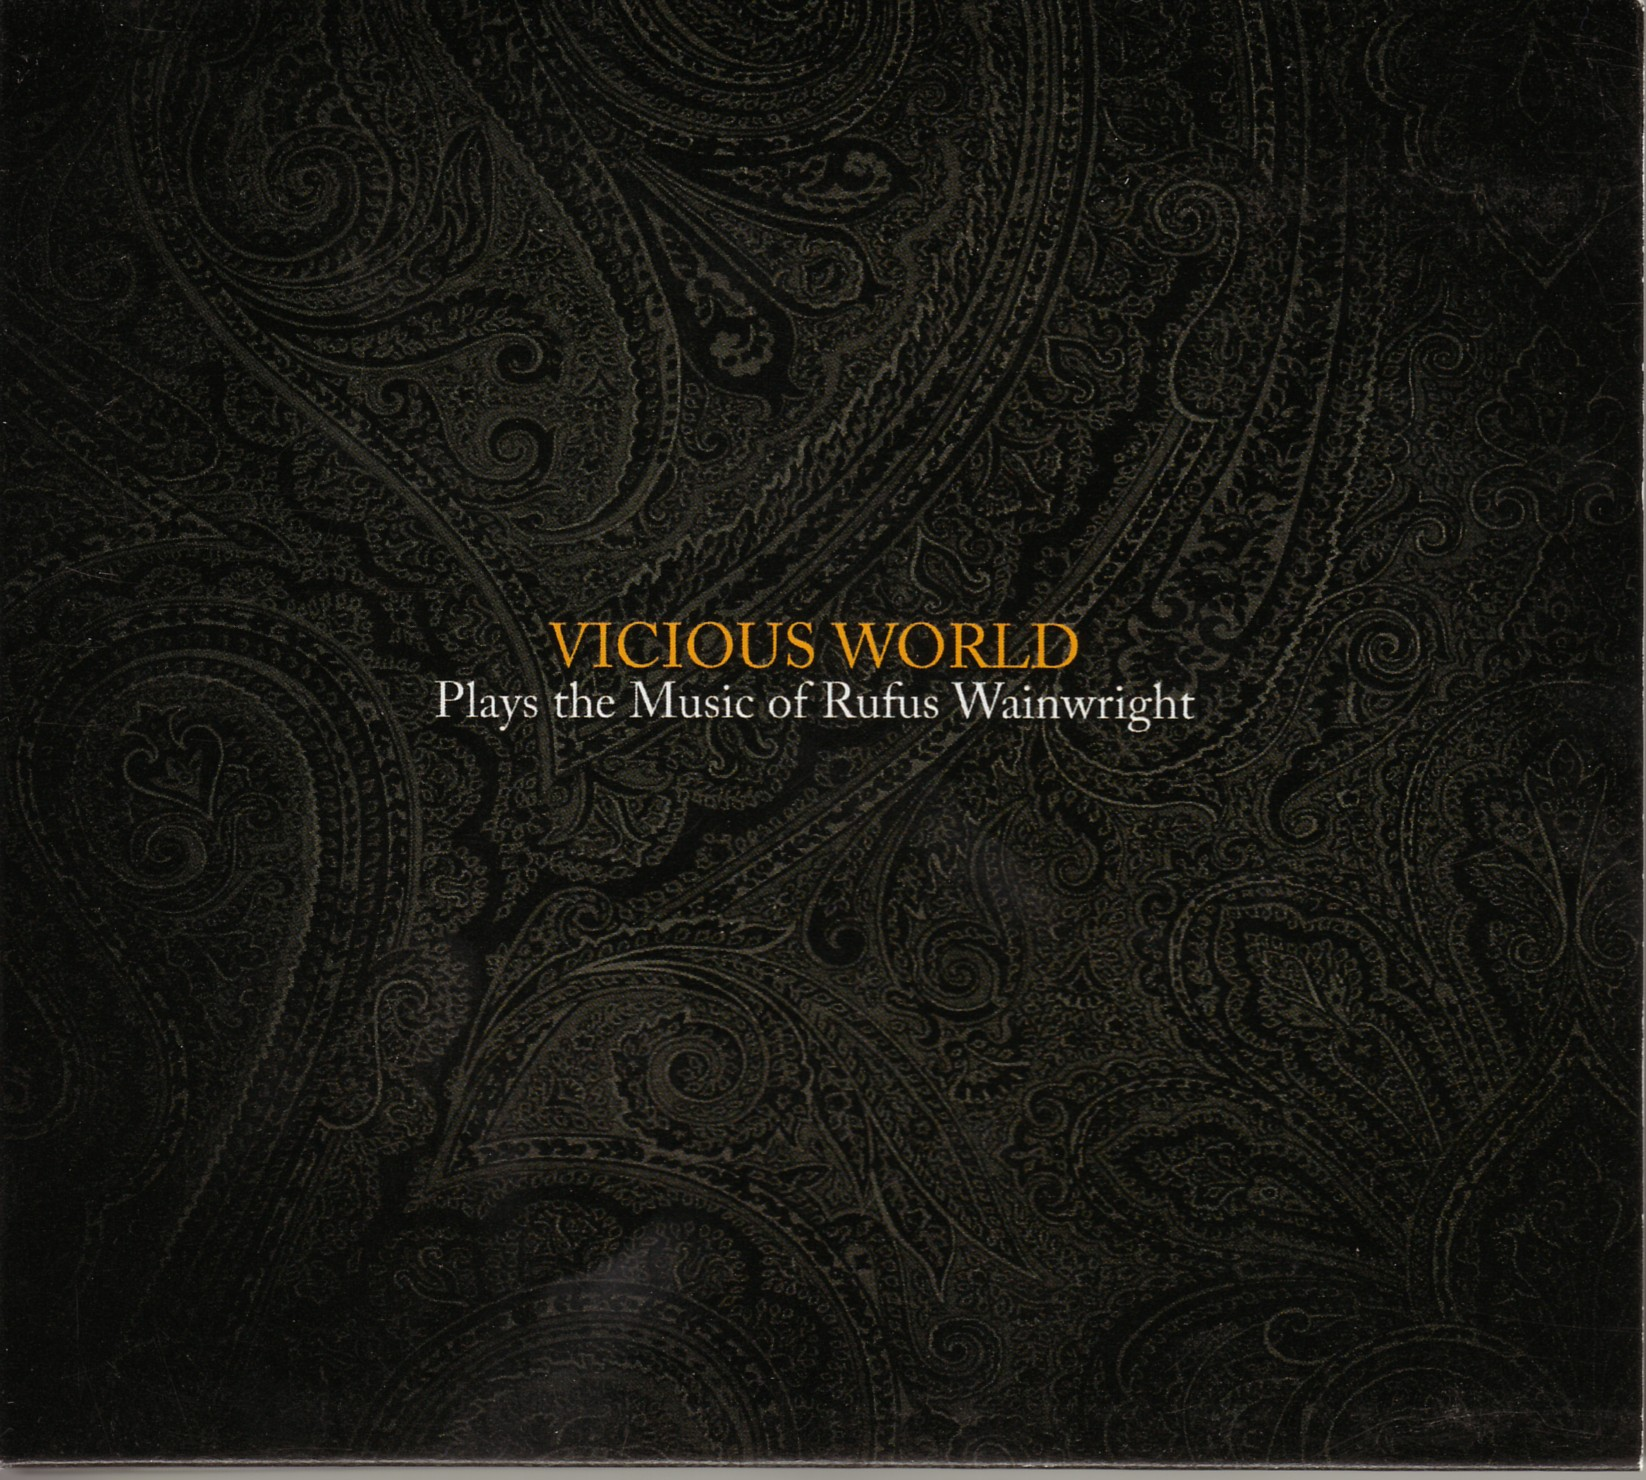 Vicious World-Plays the Music of Rufus Wainwright